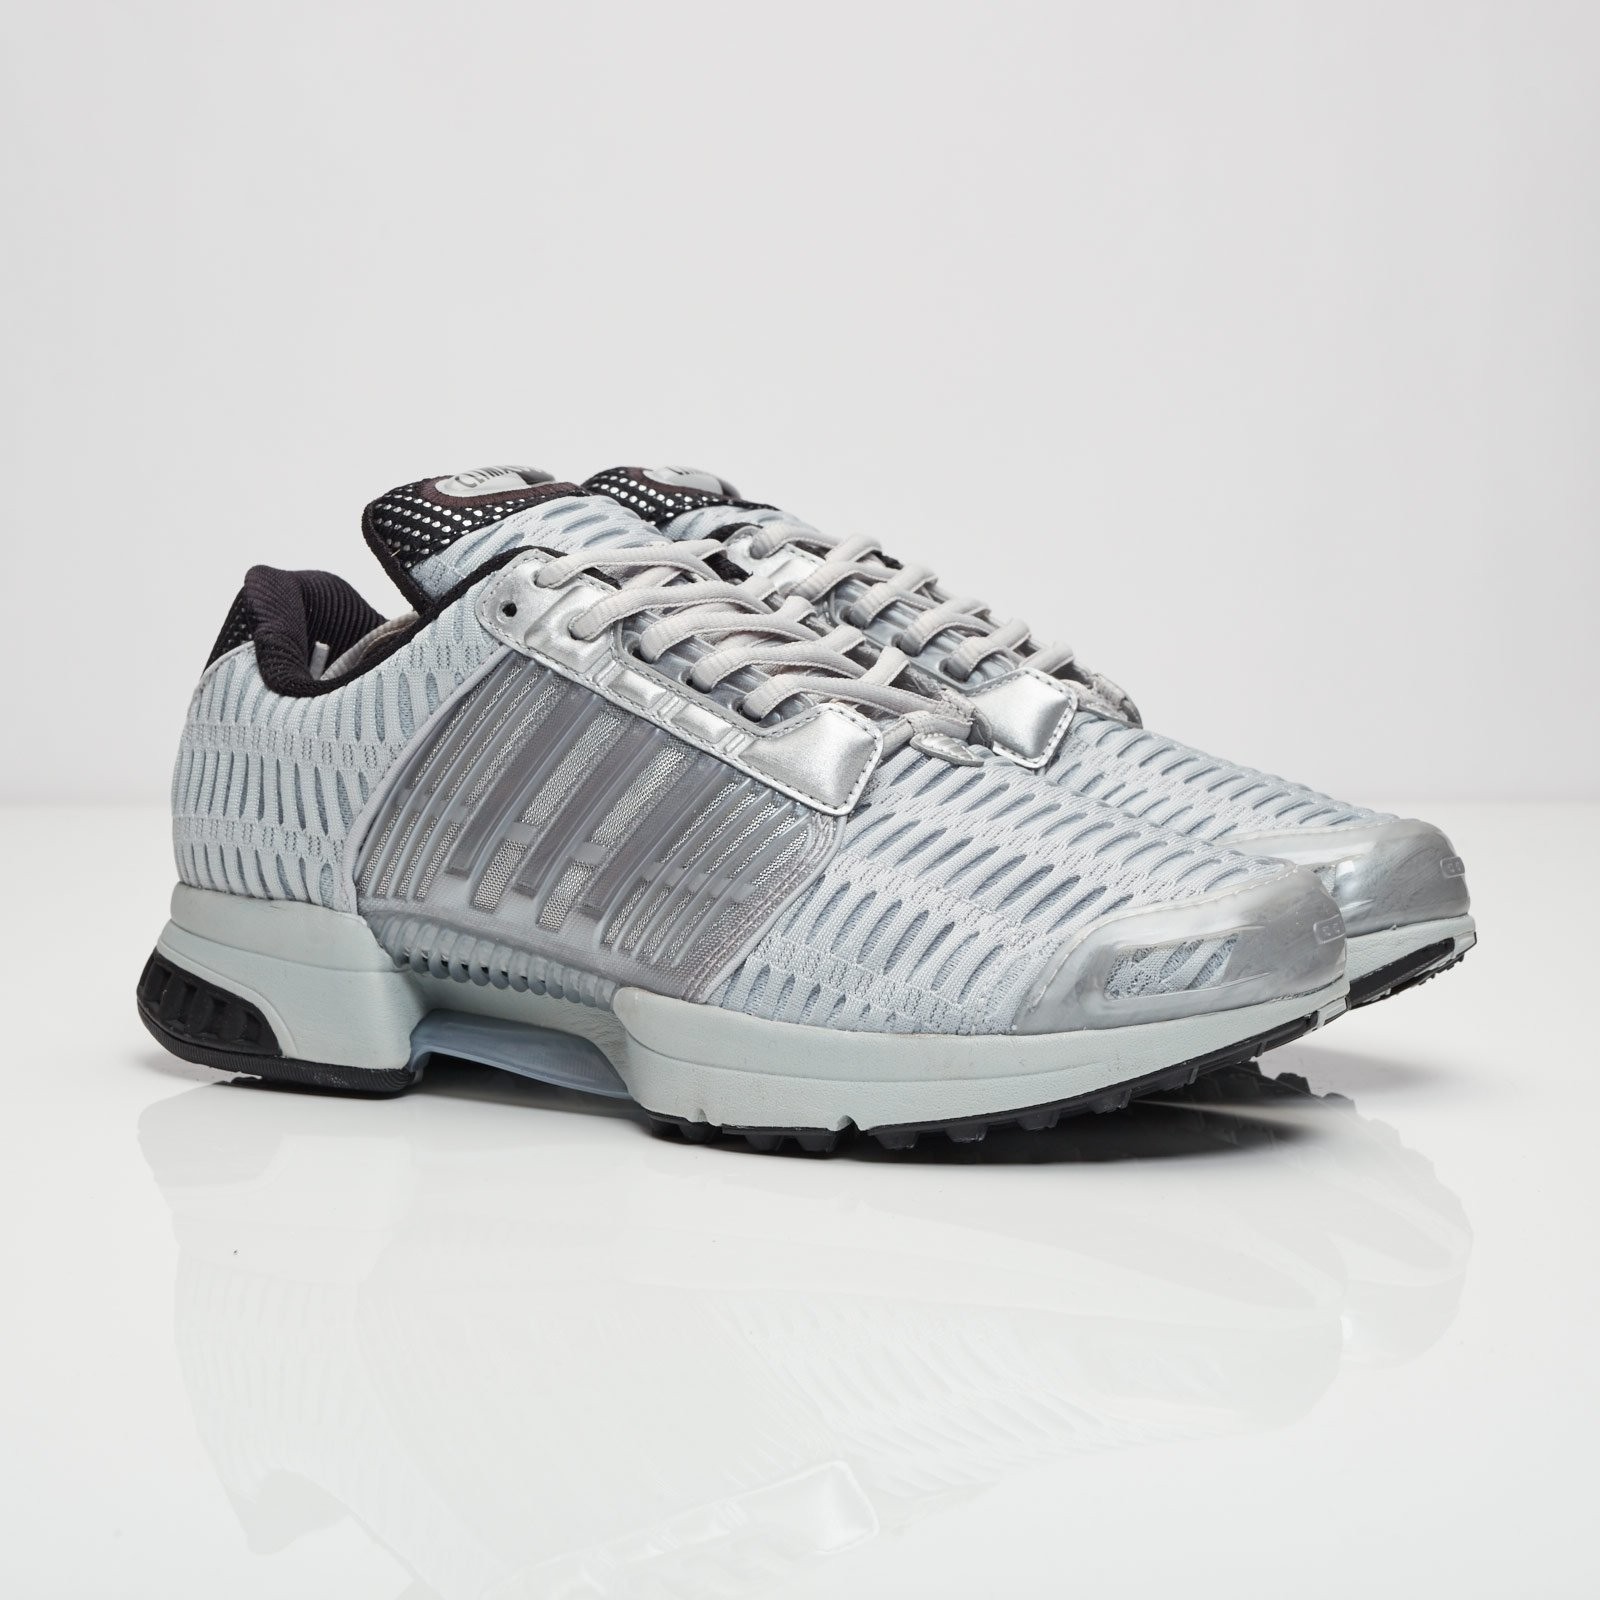 adidas Clima Cool 1 - Ba8570 - Sneakersnstuff   sneakers ...